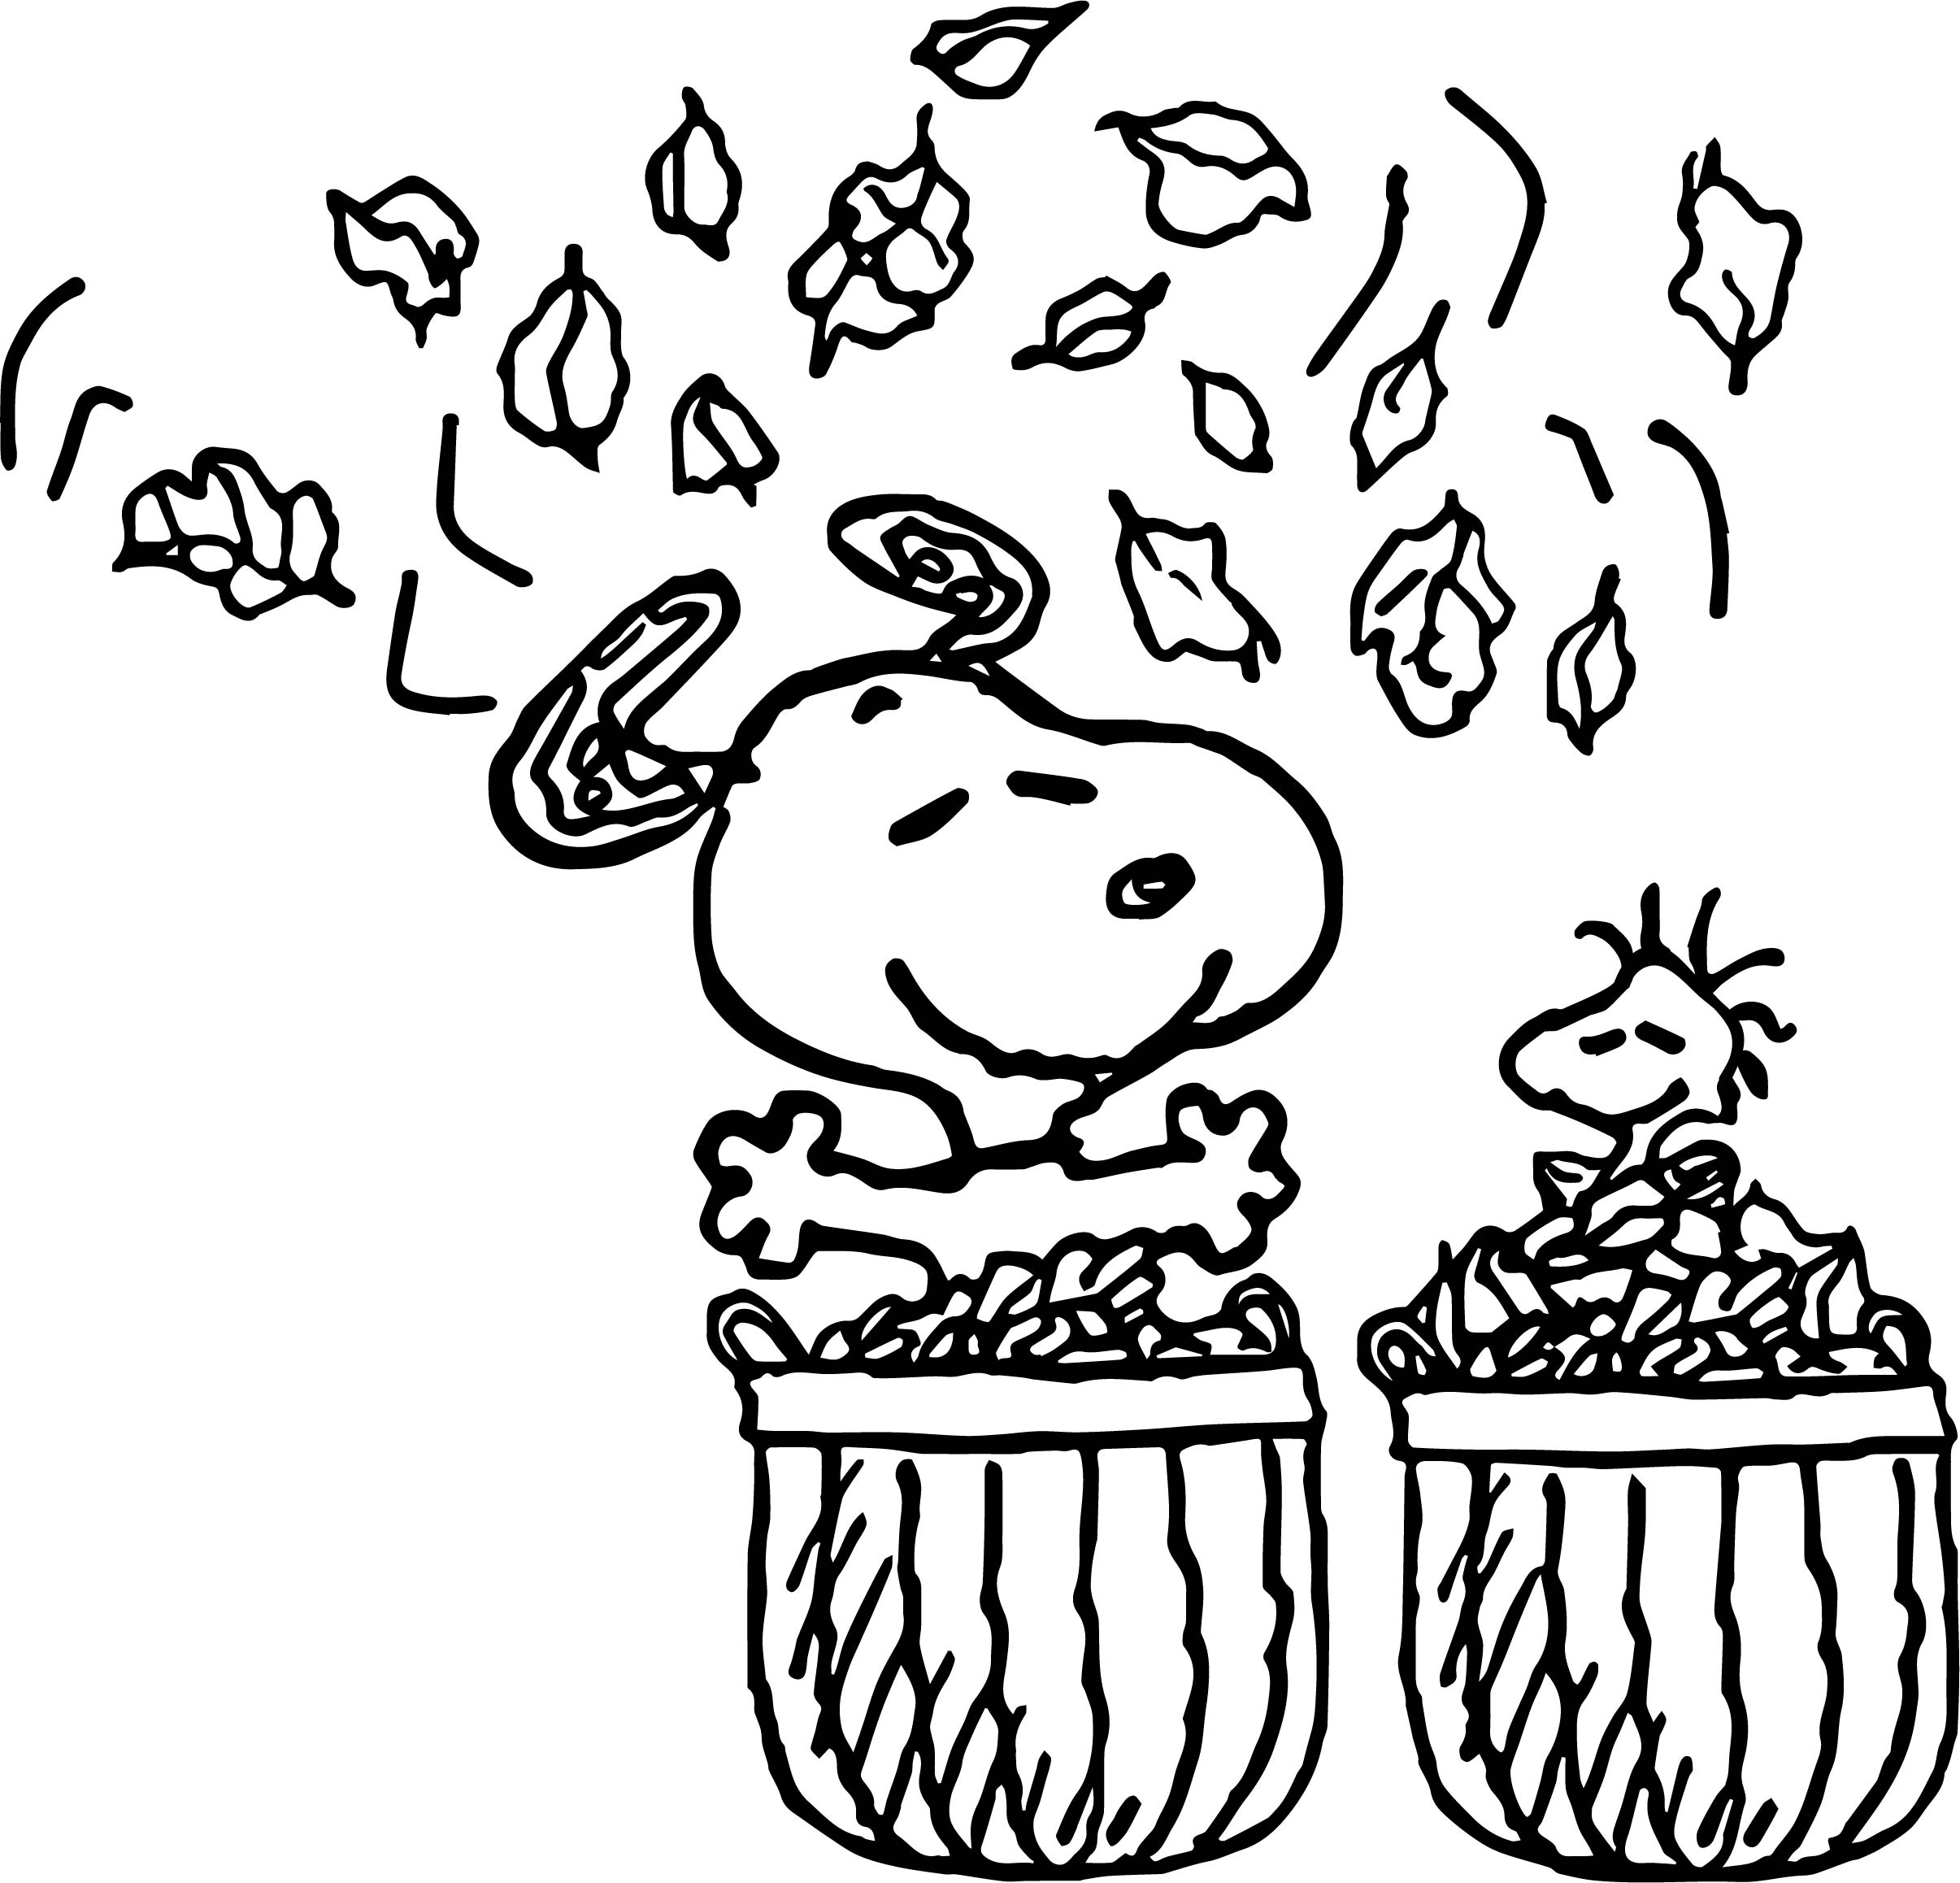 coloring sheets kindergarten fall fall leaves coloring pages for kindergarten at sheets fall kindergarten coloring